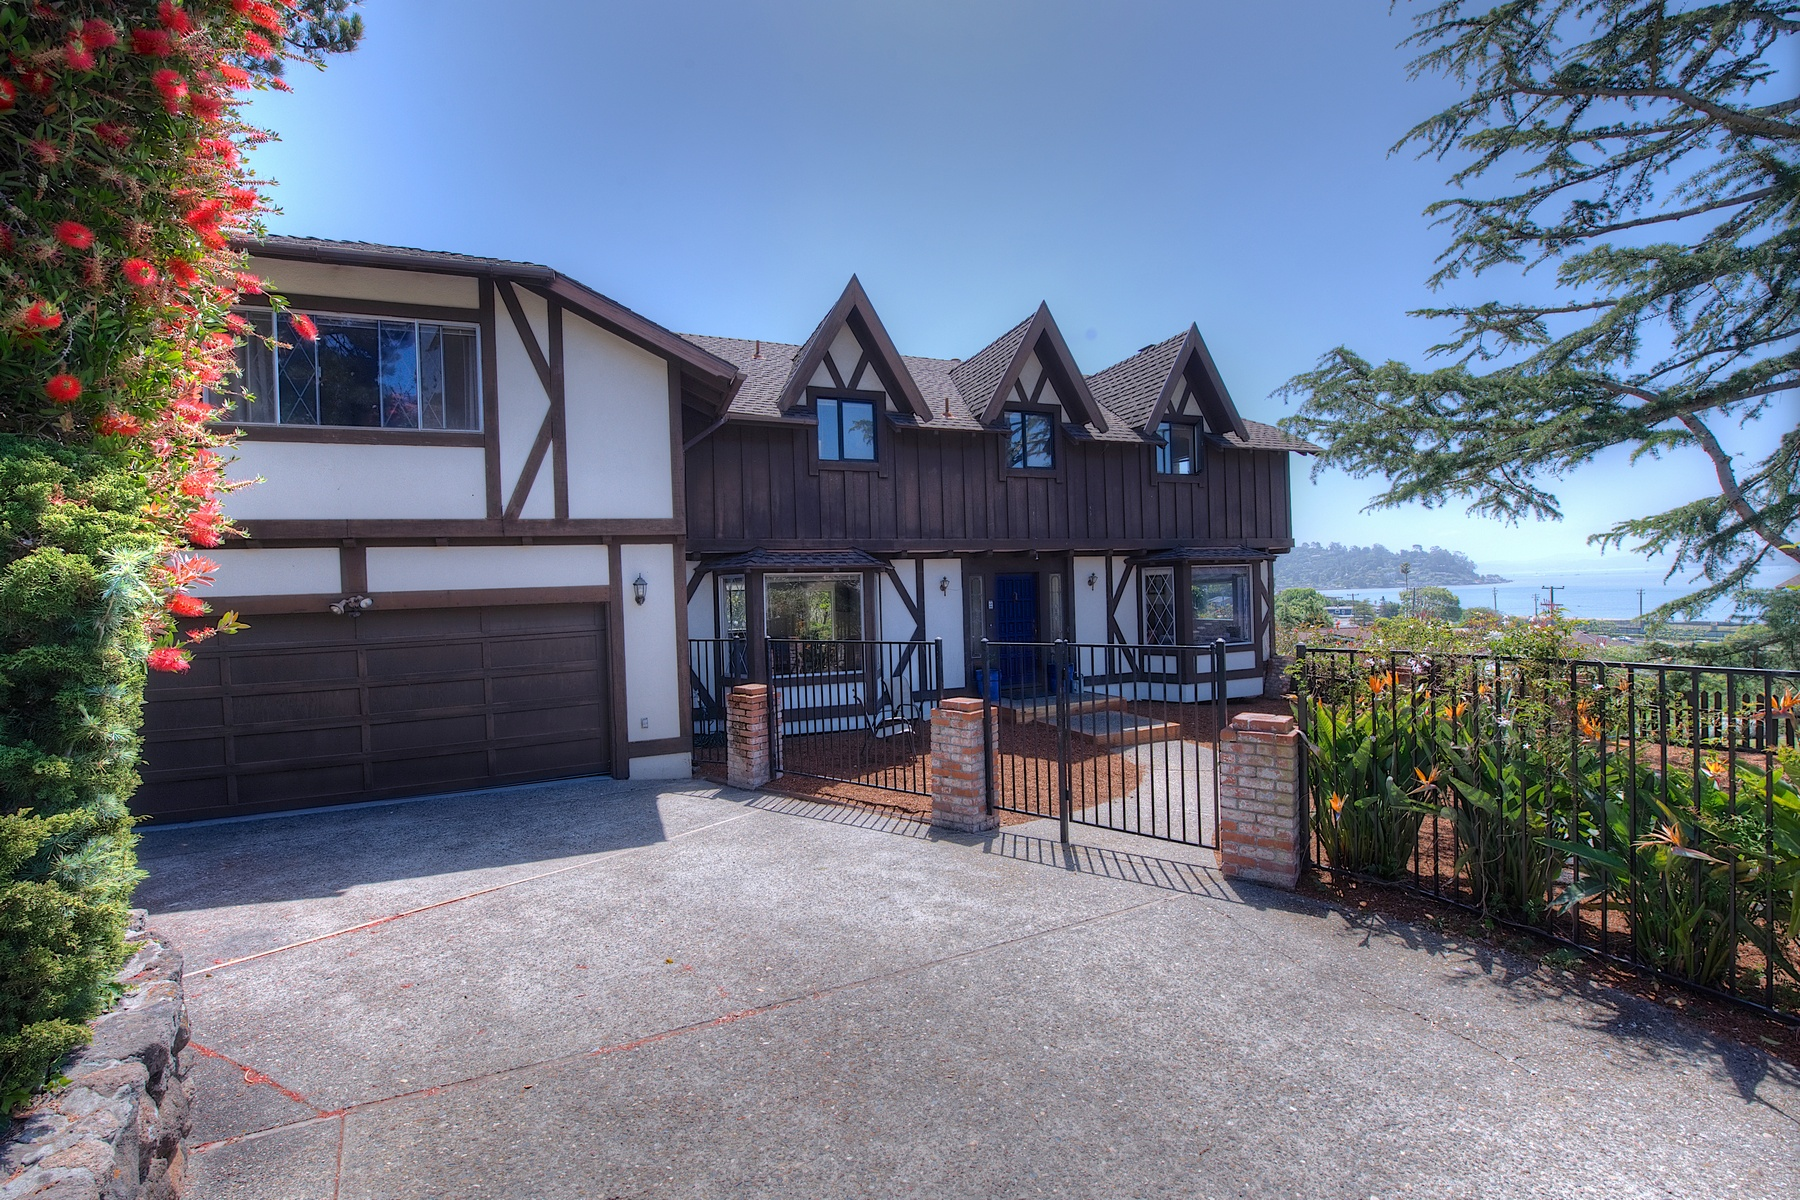 Single Family Home for Sale at IDEAL LOCATION WITH VIEWS! 2 Theresa Ct Tiburon, California 94920 United States